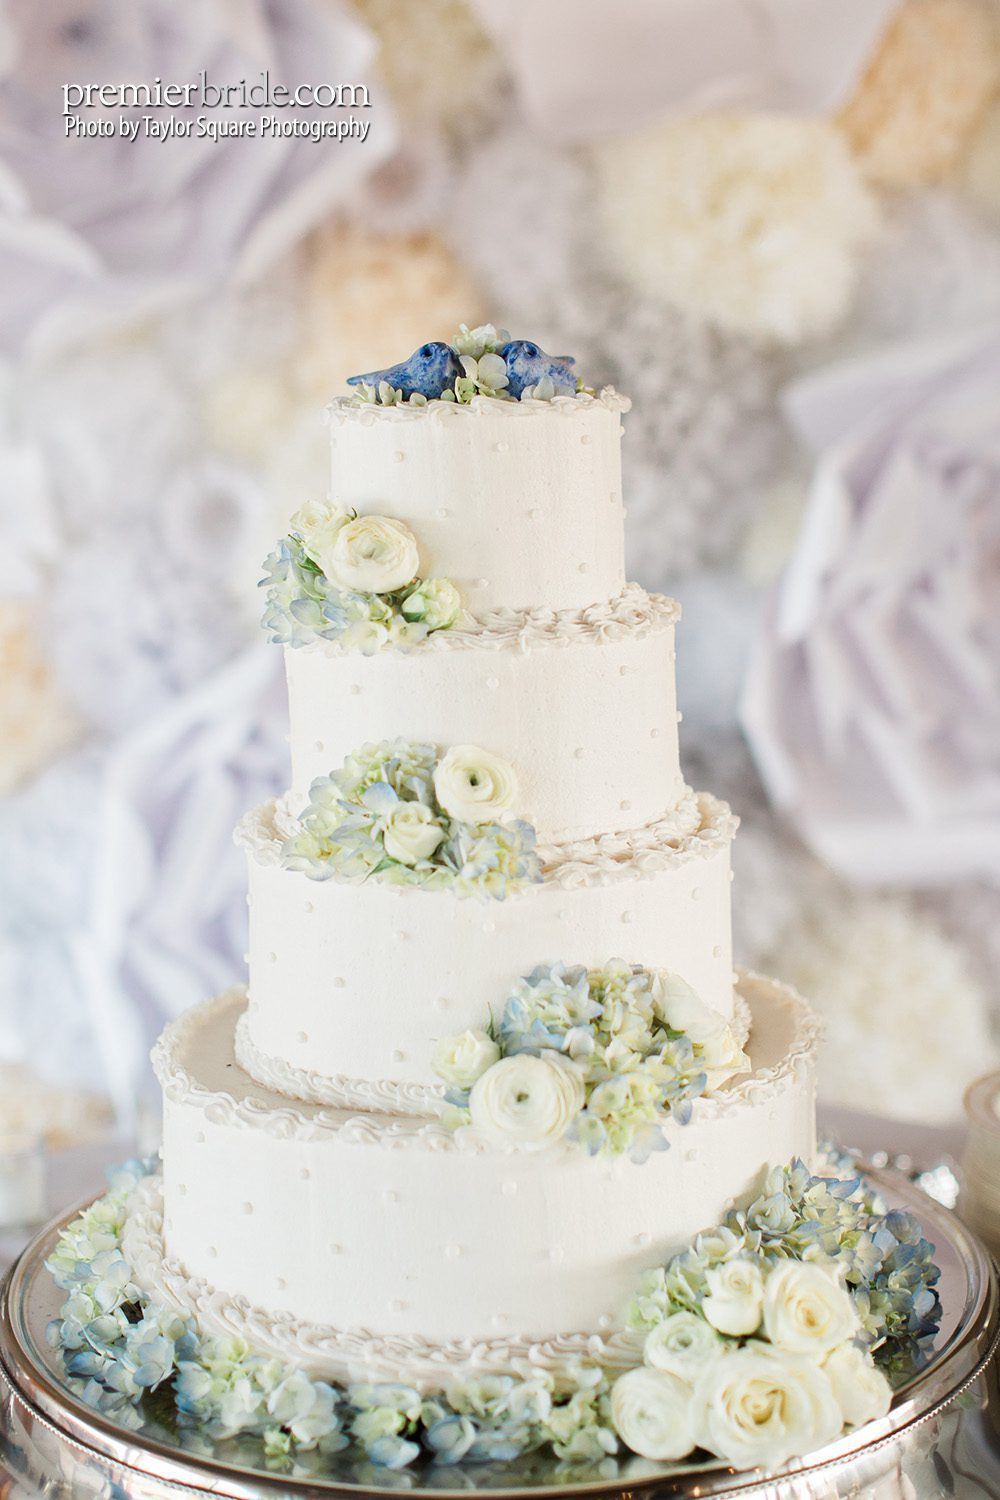 alice-chow-cakes_taylor-square-photography | Premier Bride